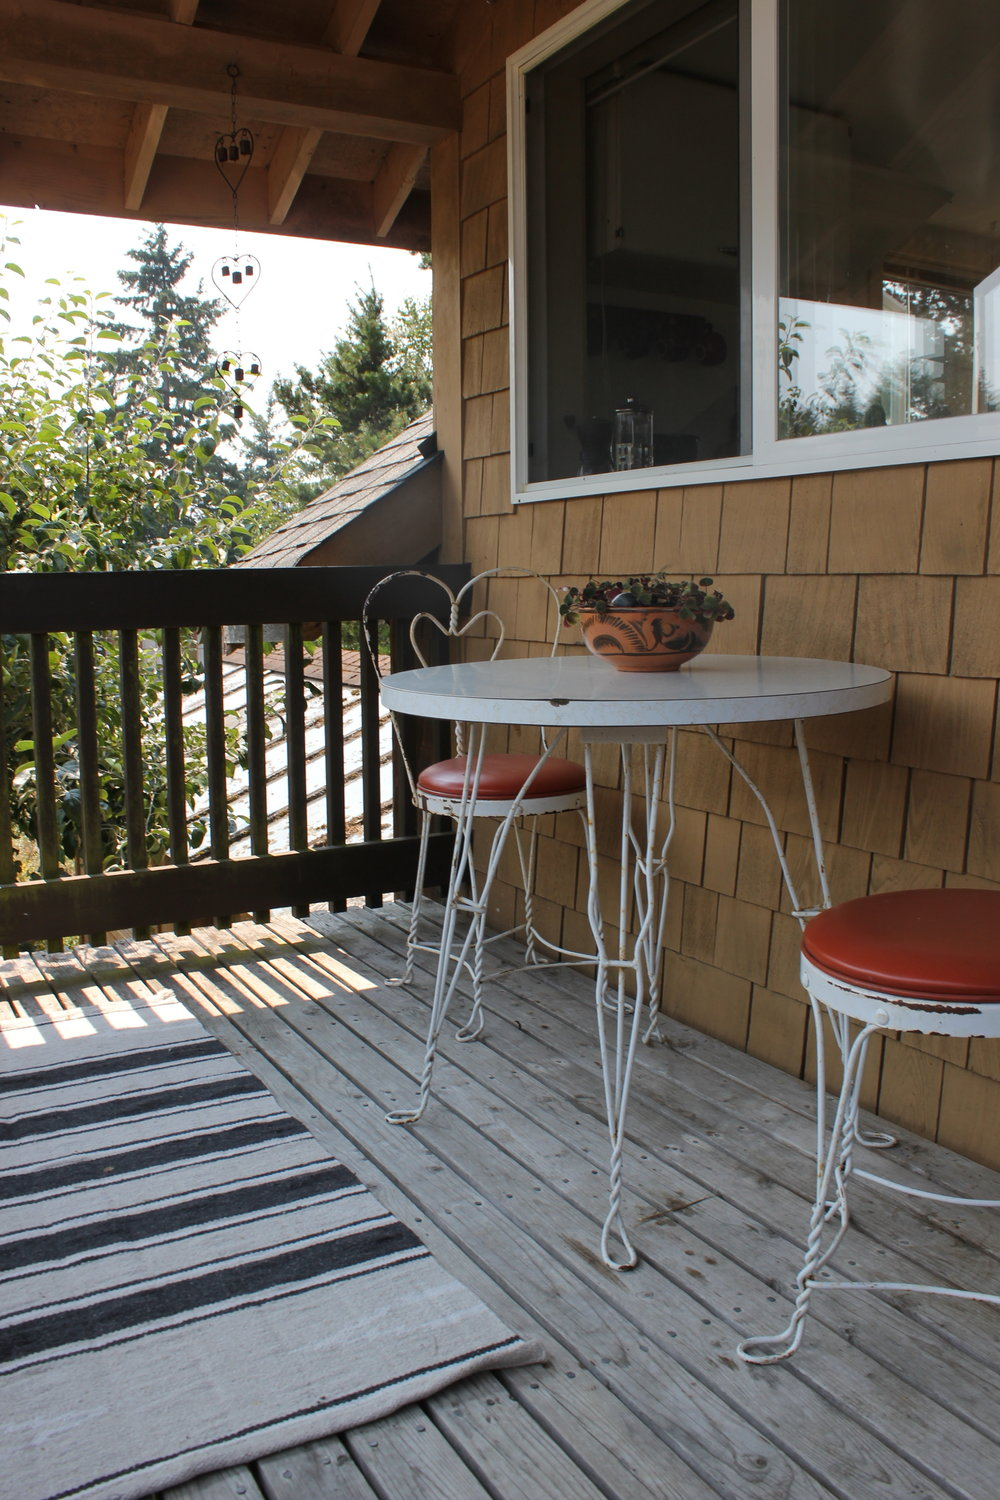 plum nelli apartment porch with vintage chairs plants and handwoven rug.JPG